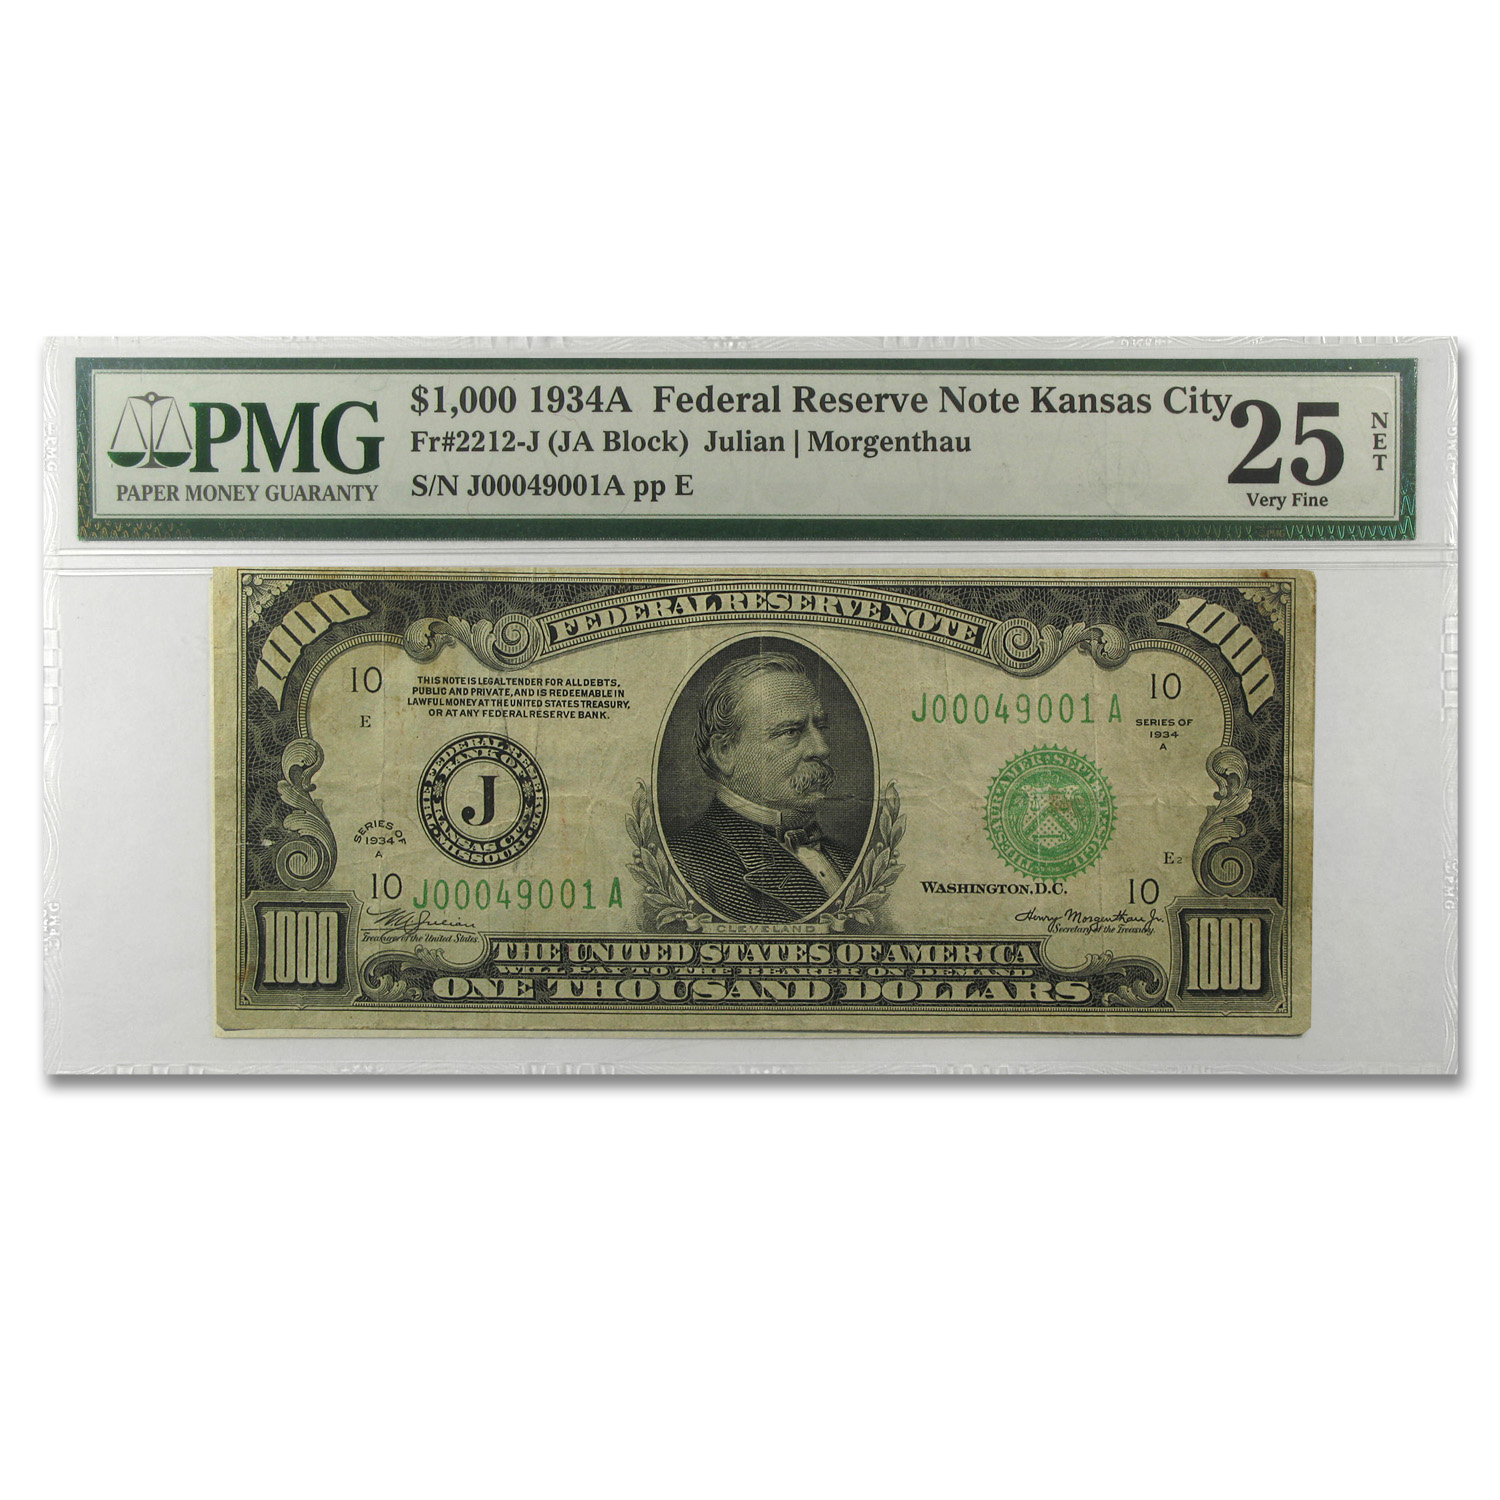 1934-A (J-Kansas City) $1,000 FRN PMG (Very Fine) 25 Net)